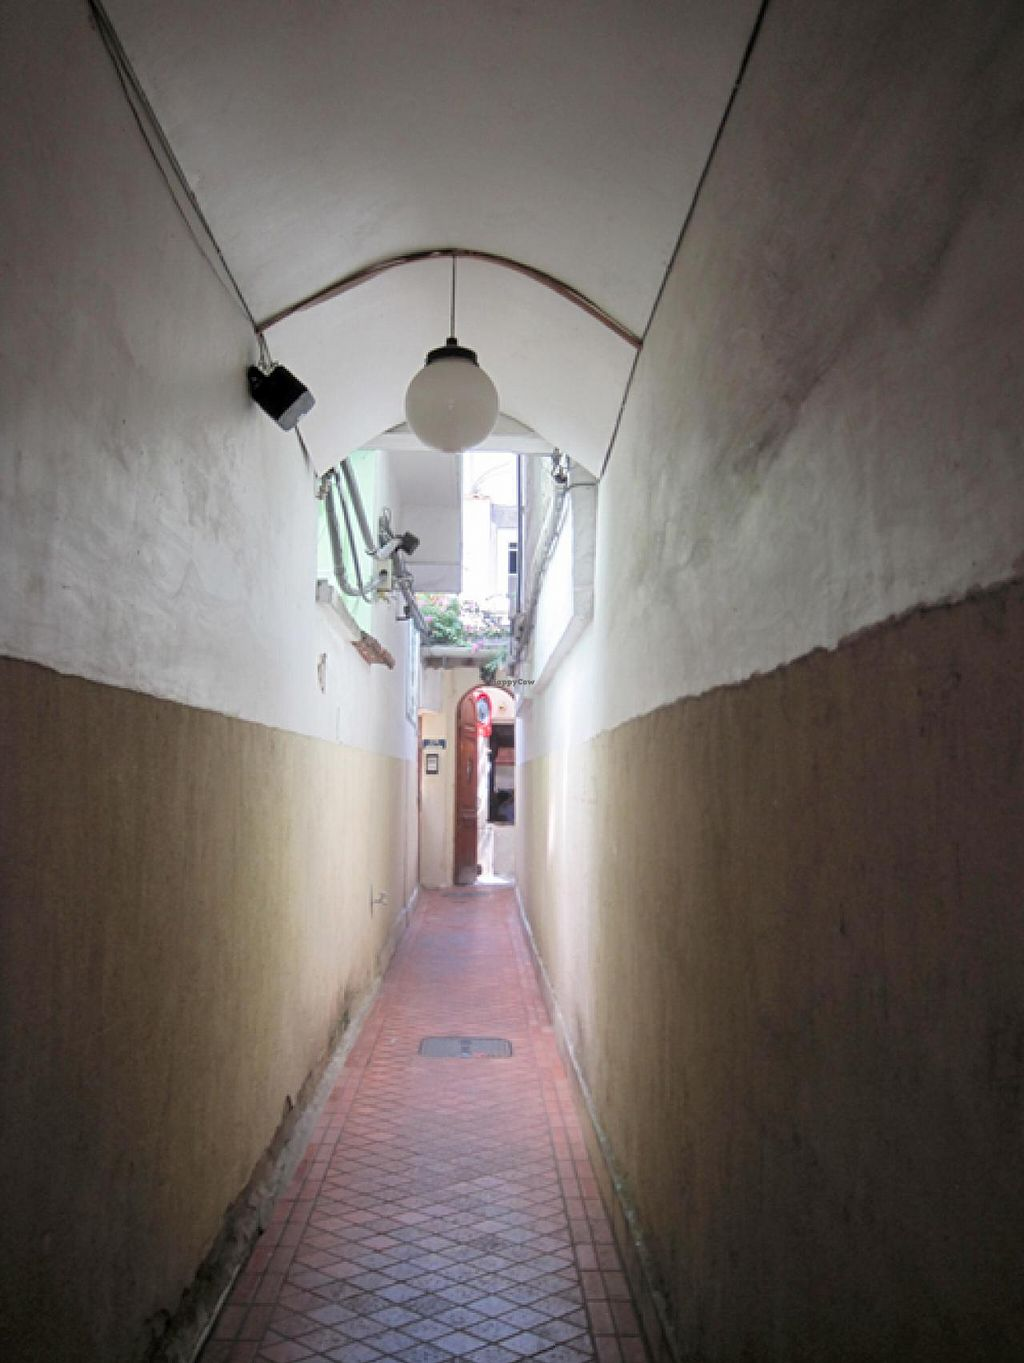 """Photo of Refeitorio Organico  by <a href=""""/members/profile/Babette"""">Babette</a> <br/>Passageway leading to the restaurant <br/> January 8, 2015  - <a href='/contact/abuse/image/19852/89803'>Report</a>"""